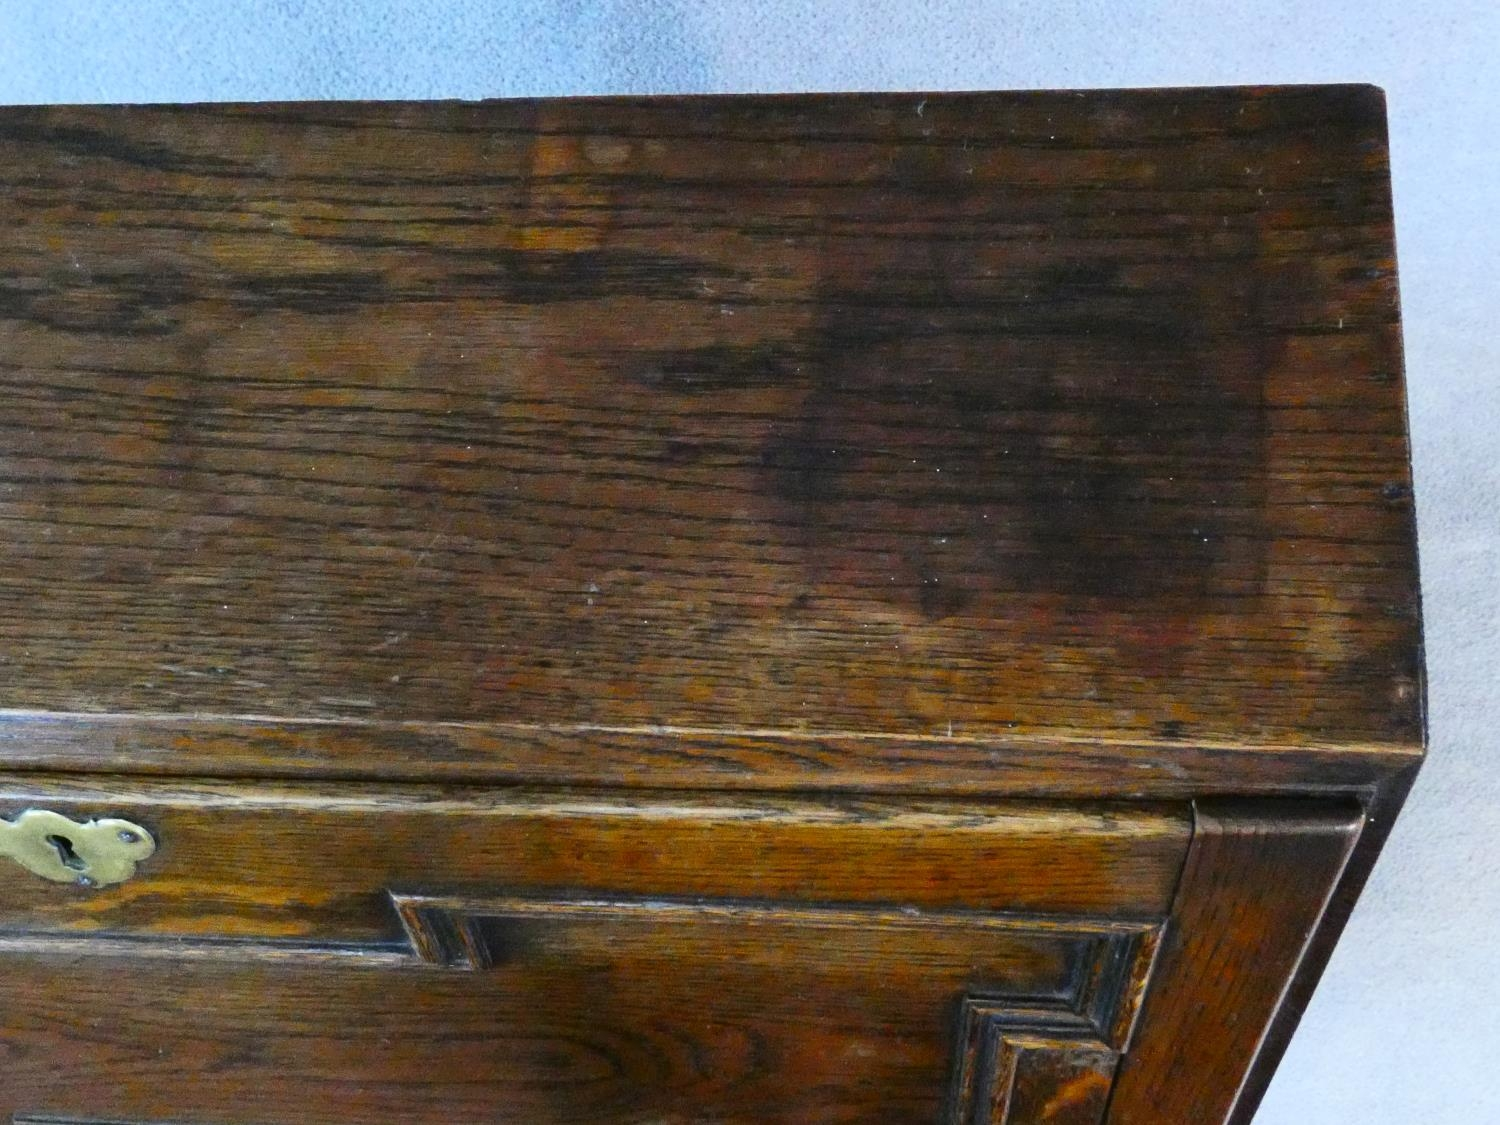 A mid century Jacobean style oak bureau with lozenge inset panels and fall front revealing fitted - Image 11 of 26